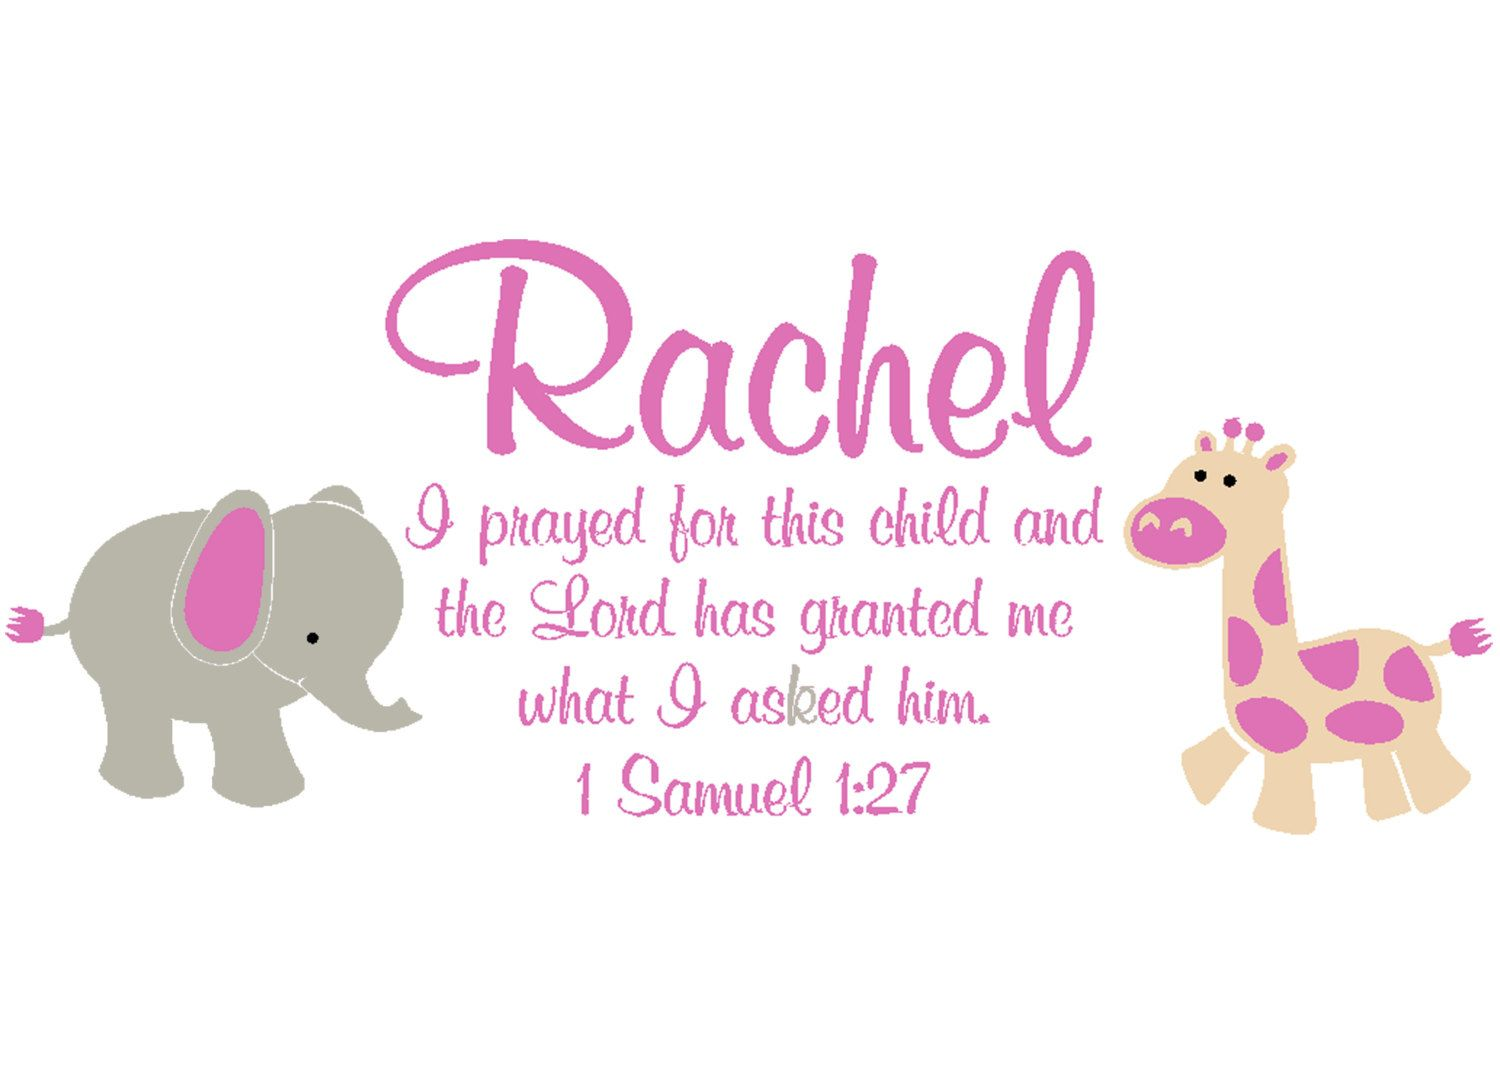 1SAM1V27-0014 1 Samuel 1:27 Bible Verse Scripture Verse Child Name Personalized Vinyl Decal with Elephant and Giraffe Girls Room